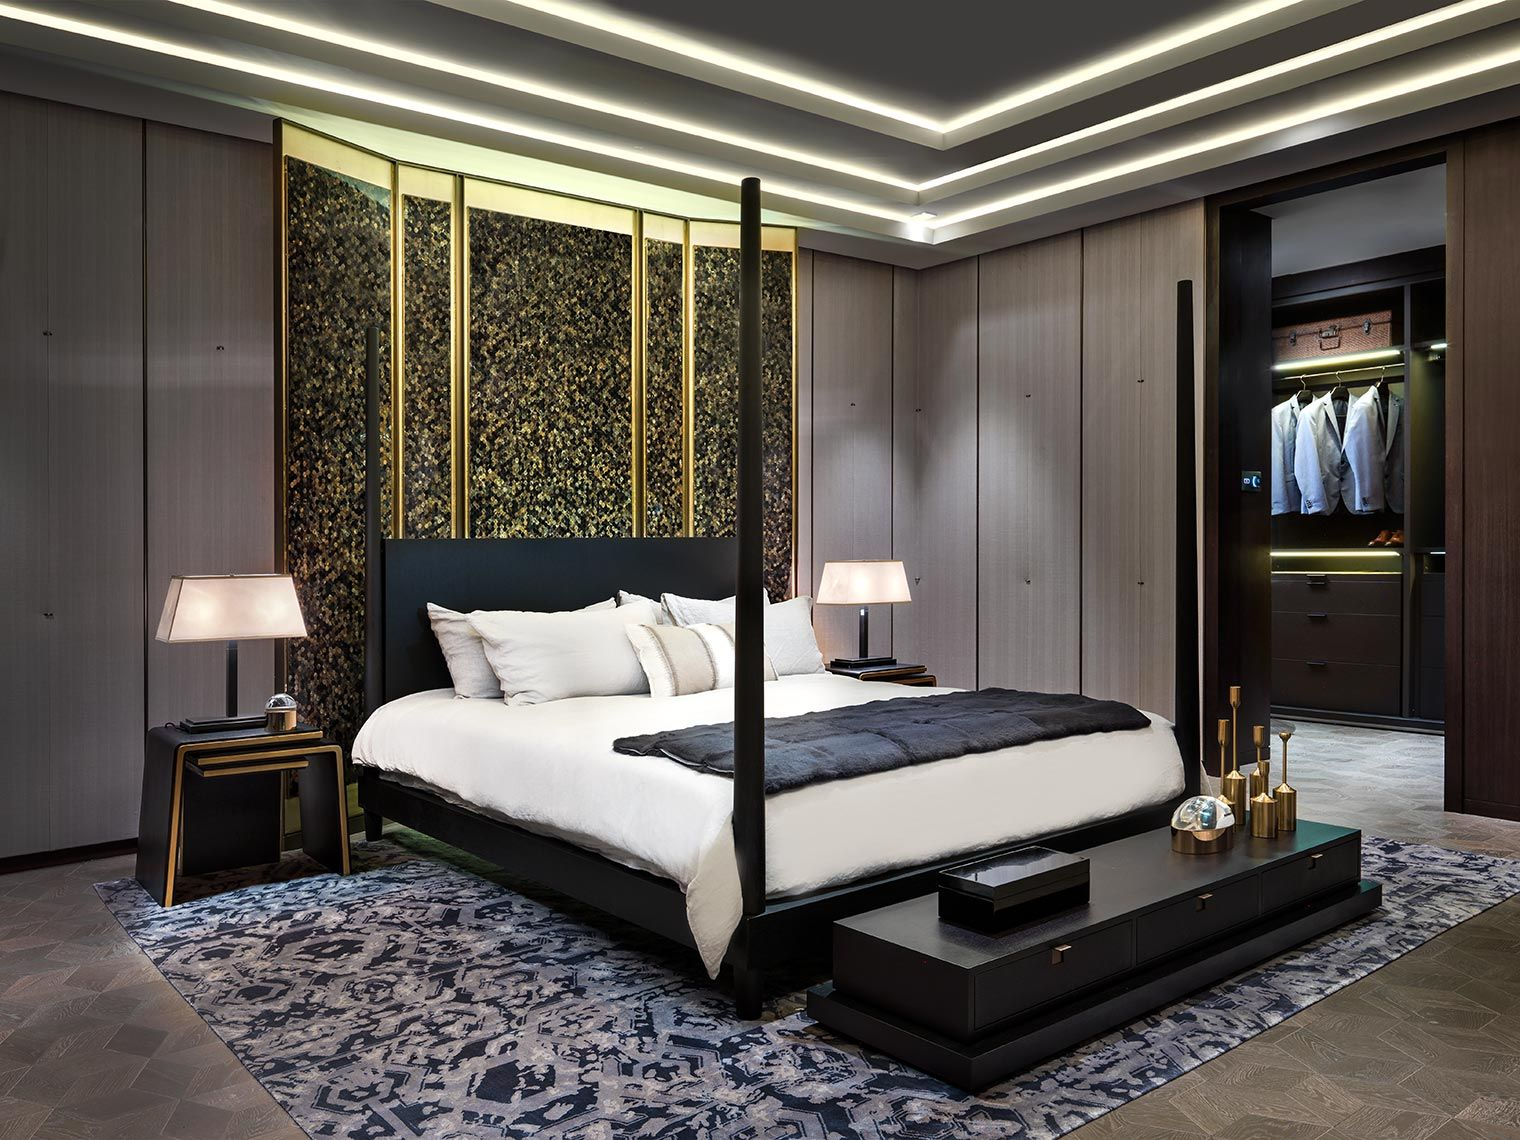 parkland room suite pinterest design firms hospitality and